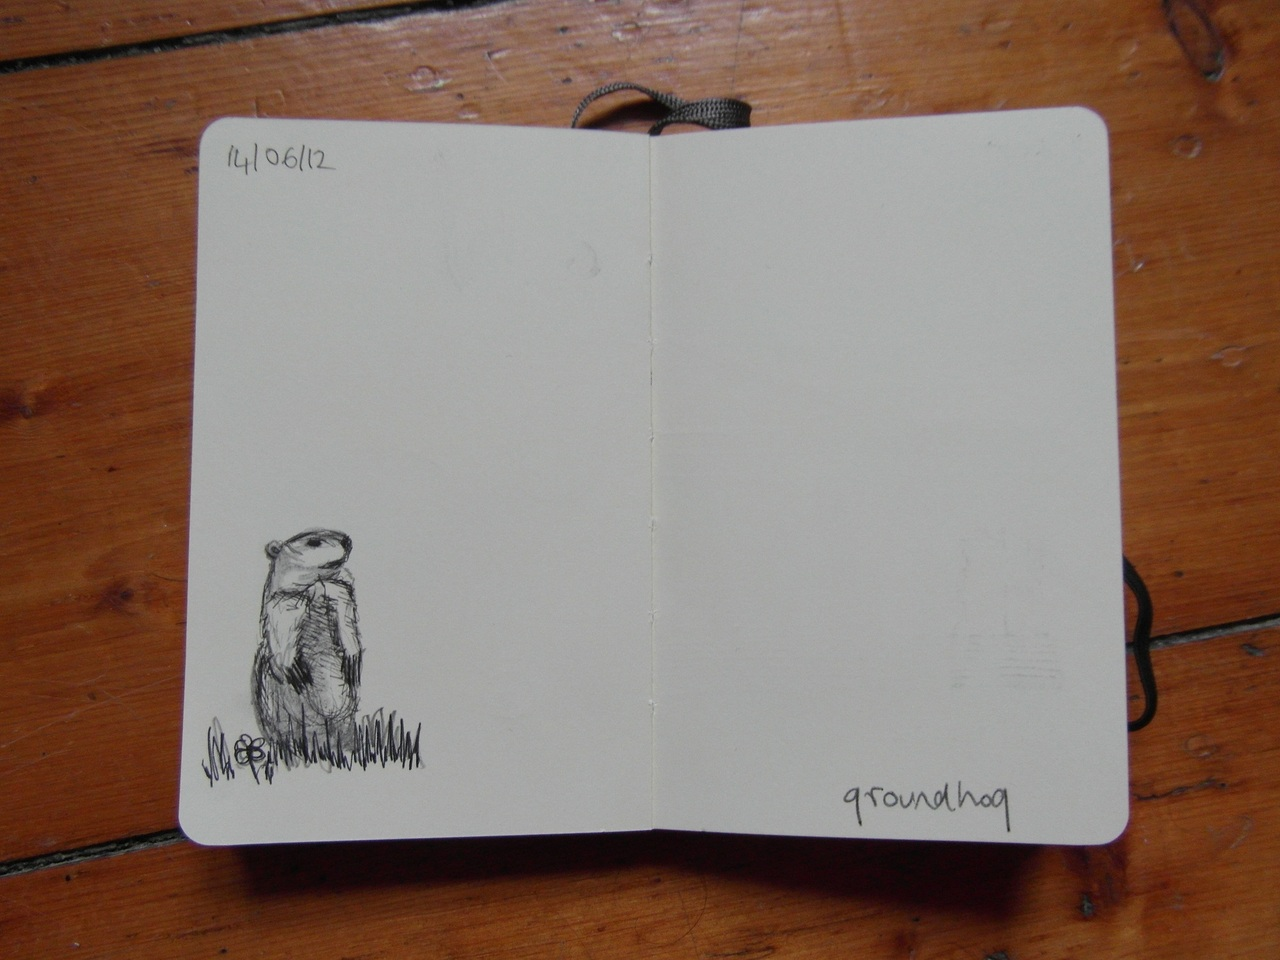 365 drawings later … day 135 … groundhog day